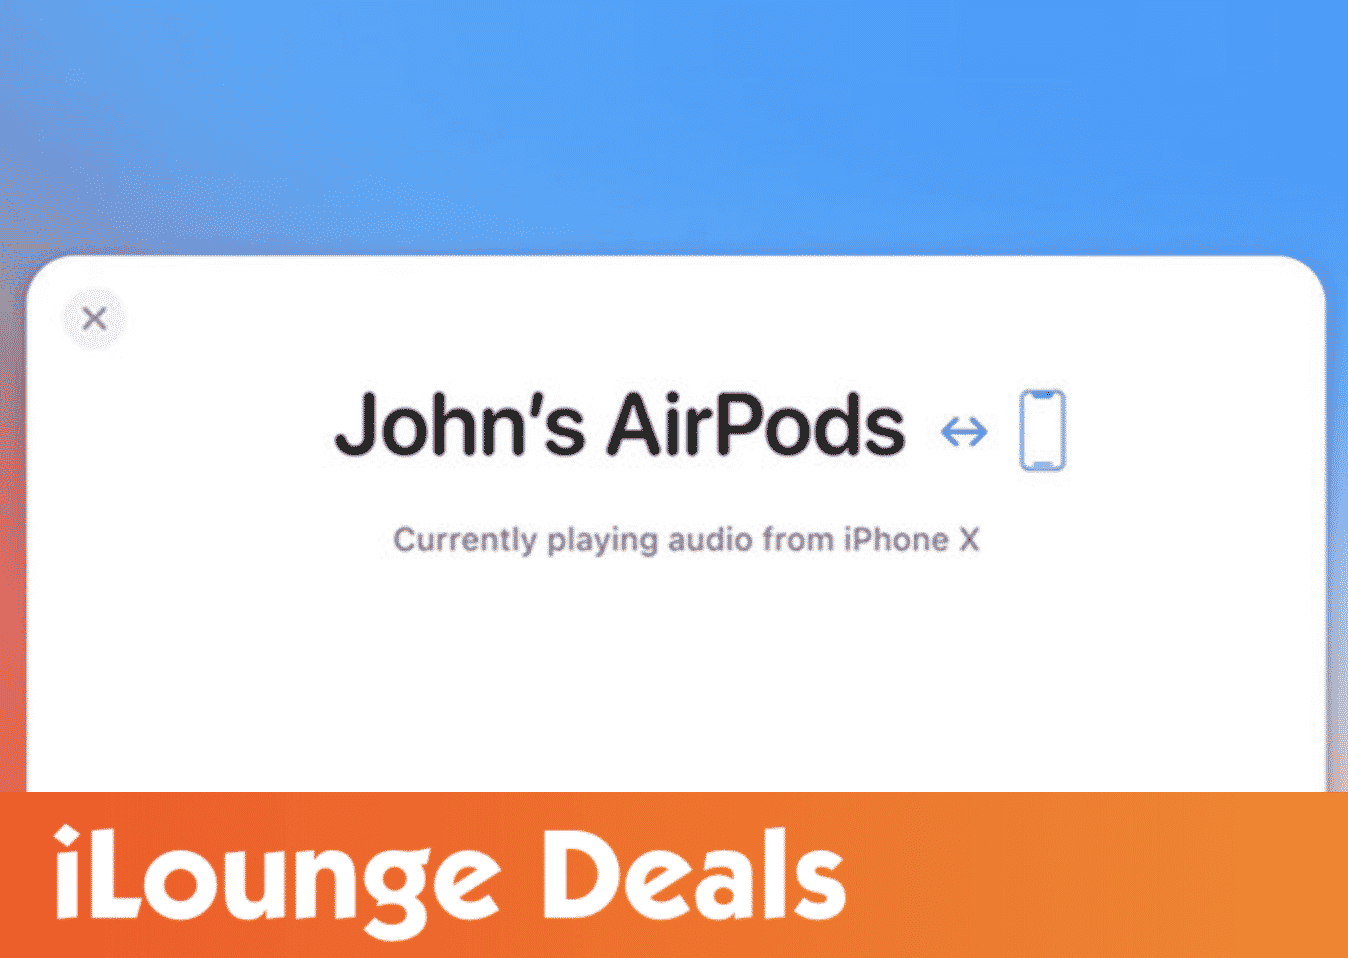 Connect AirPods to Your Mac is 10% off